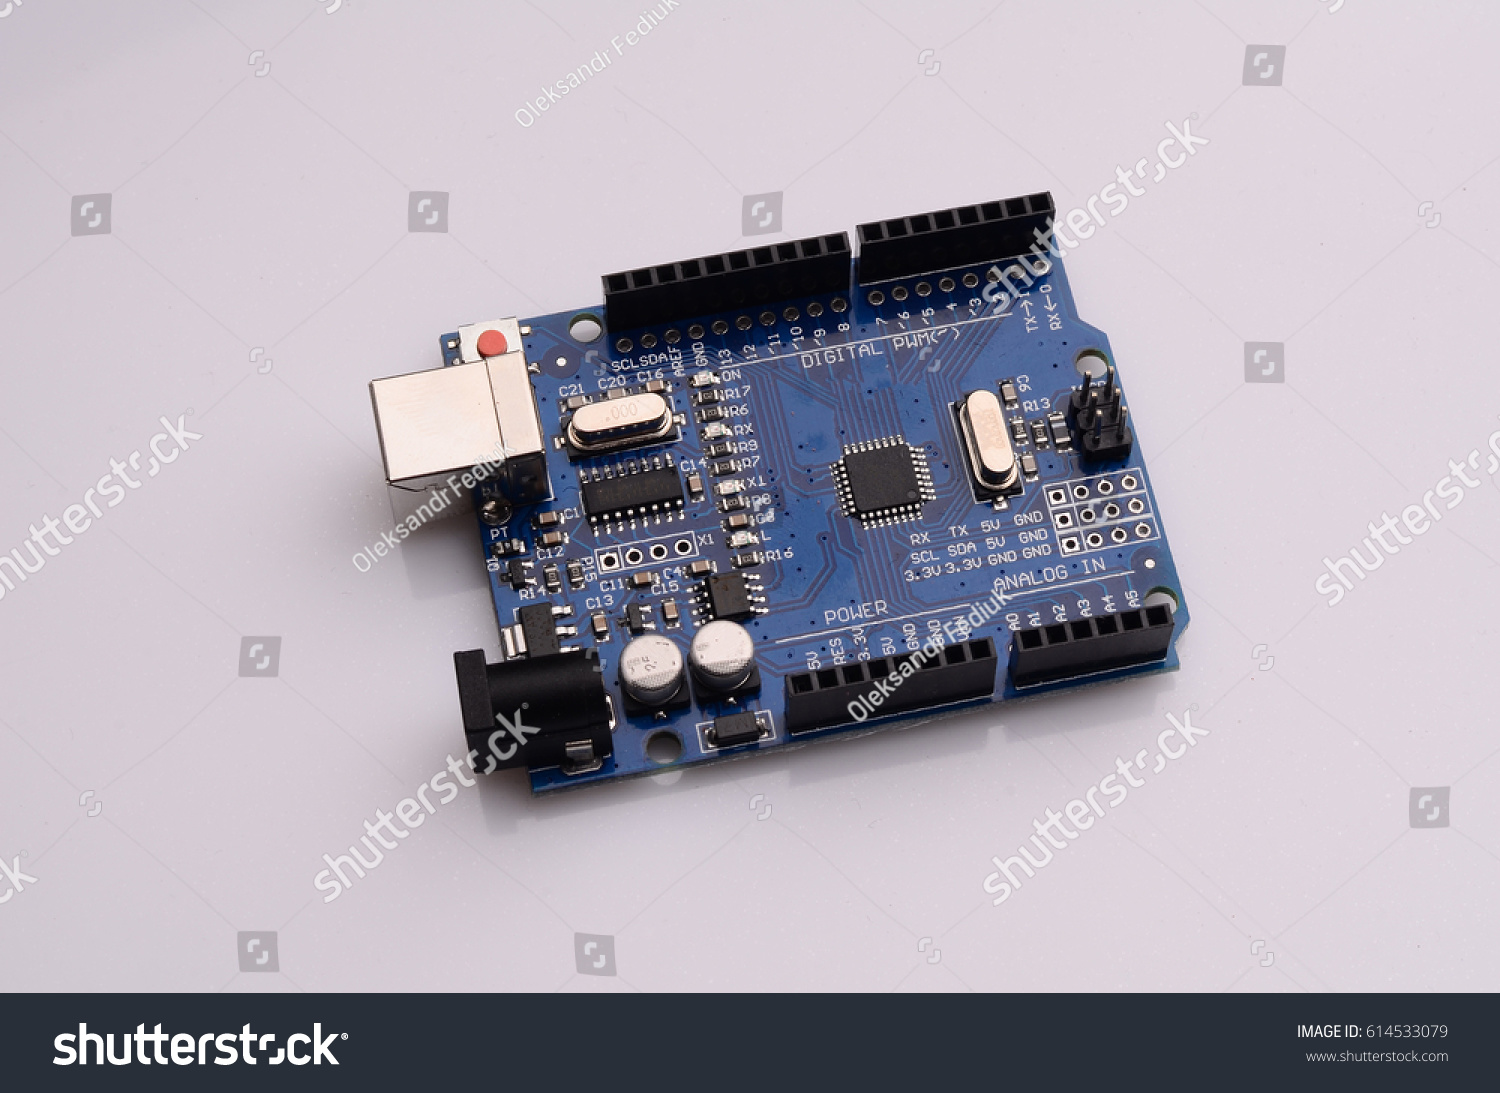 Integrated Circuits Closeup Printed Circuit Board Stock Photo Edit Of A With Components Such As